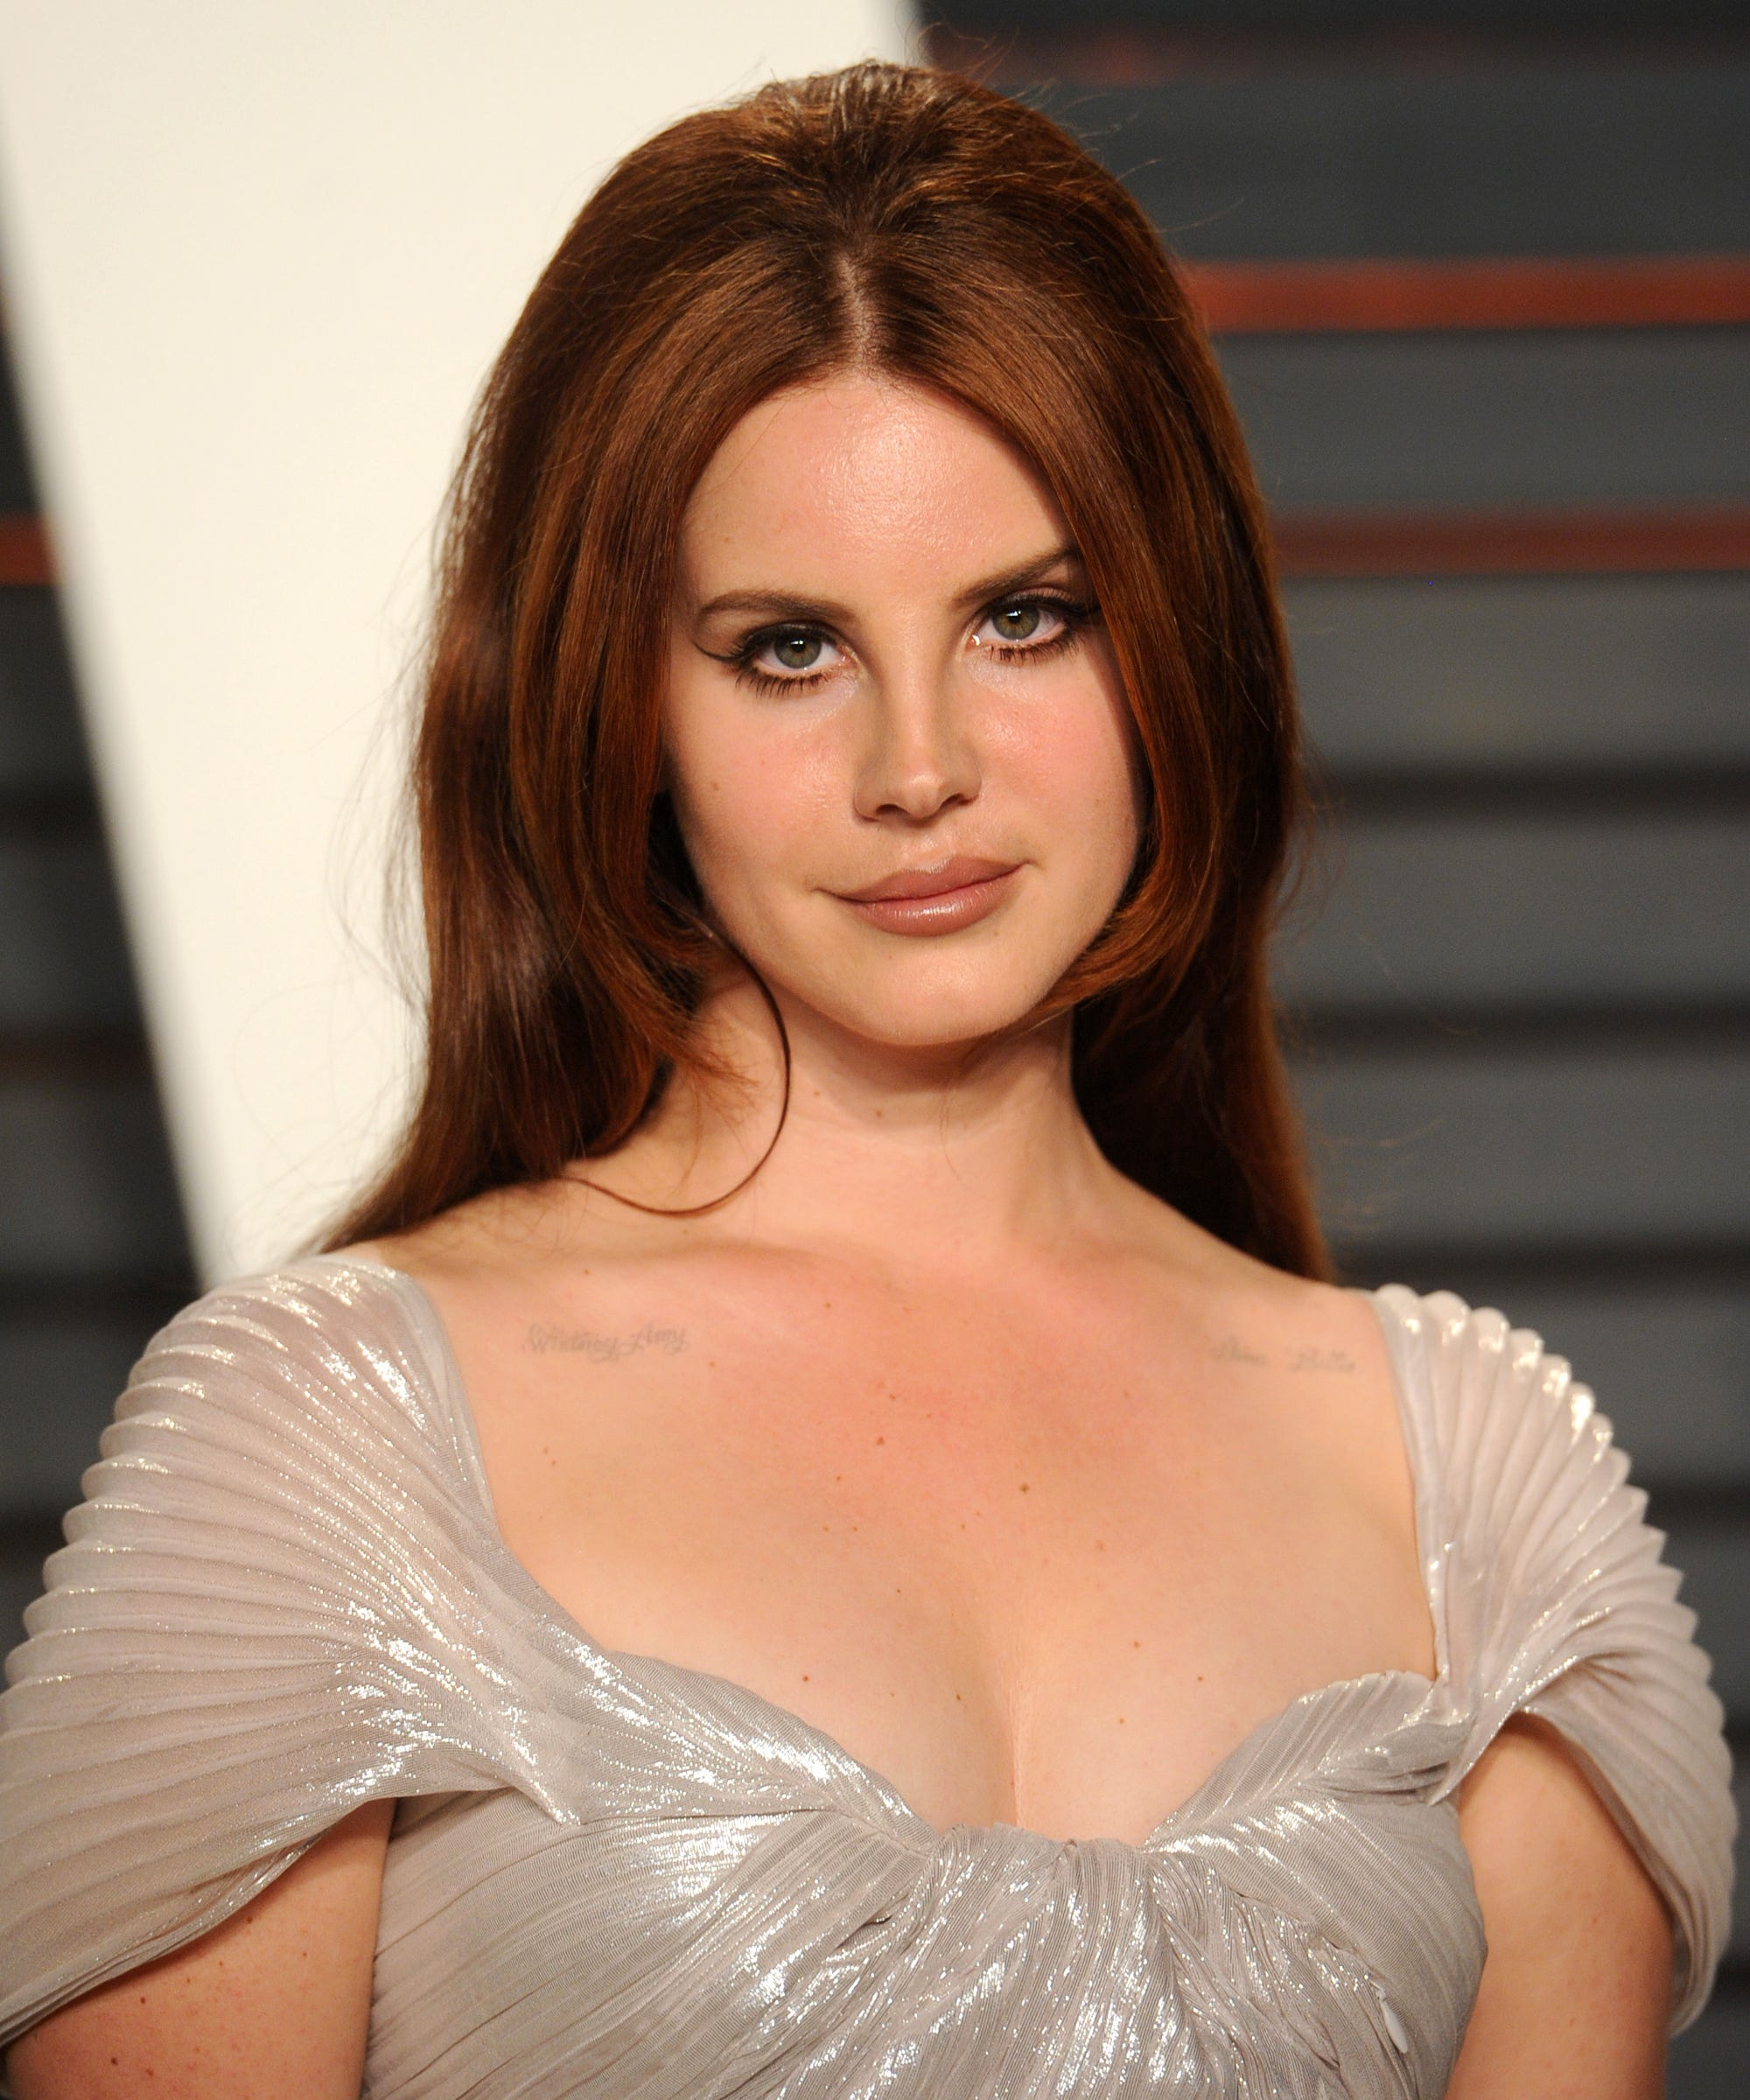 Hacked Lana Del Rey nude (99 foto and video), Sexy, Cleavage, Boobs, butt 2018